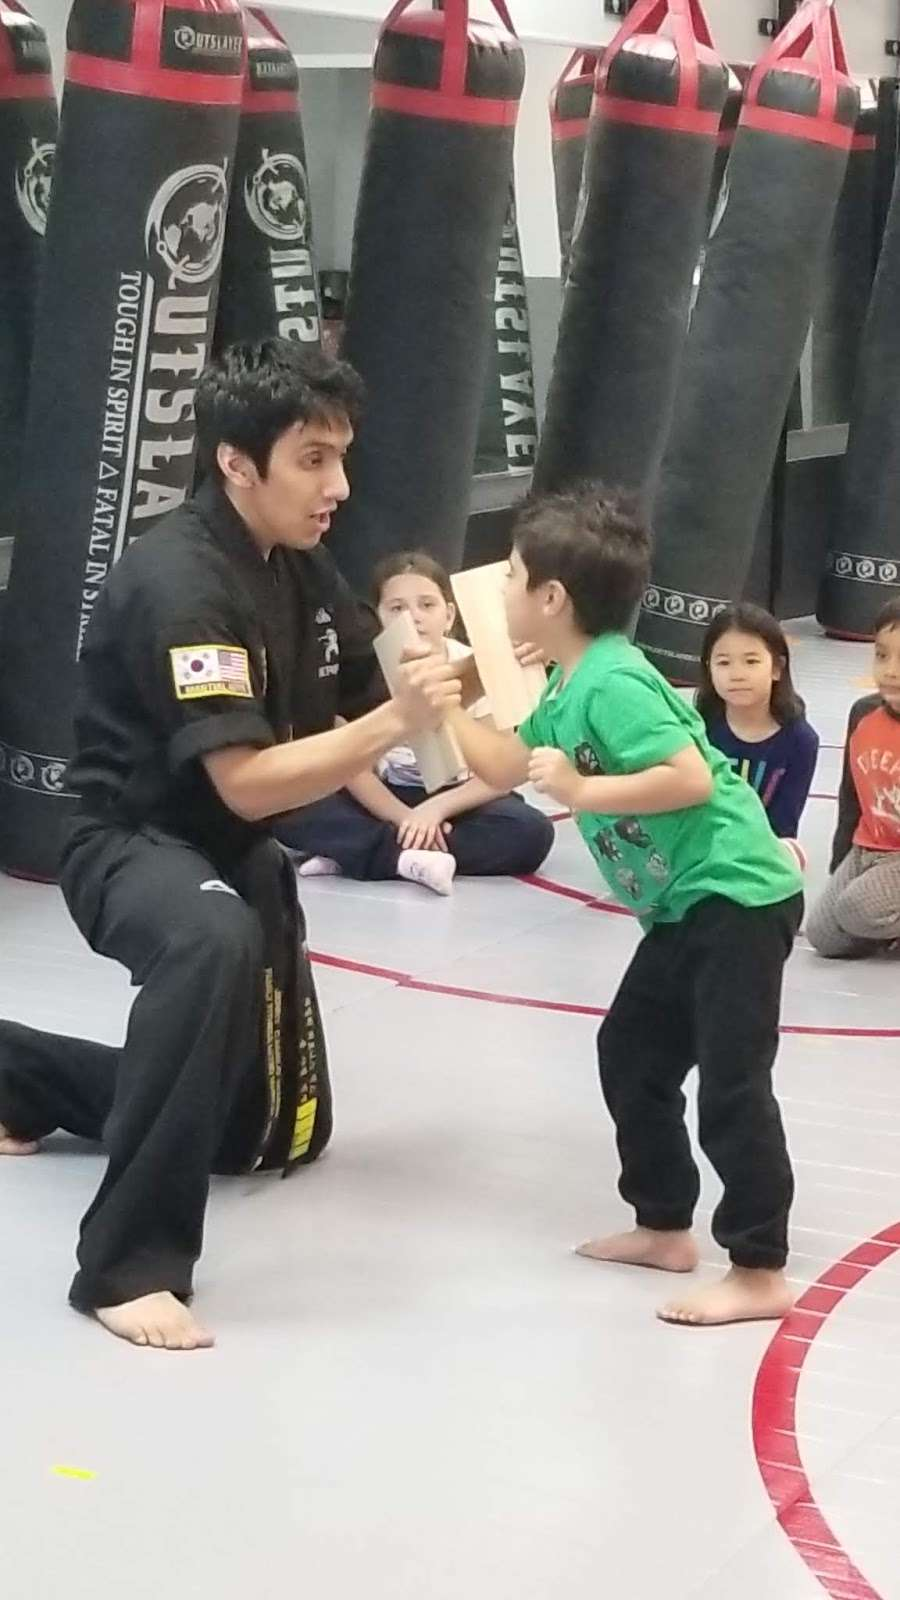 Family Fitness Karate & Kickboxing - Downtown Jersey City - health  | Photo 4 of 4 | Address: 263 Monmouth St, Jersey City, NJ 07302, USA | Phone: (201) 706-2201